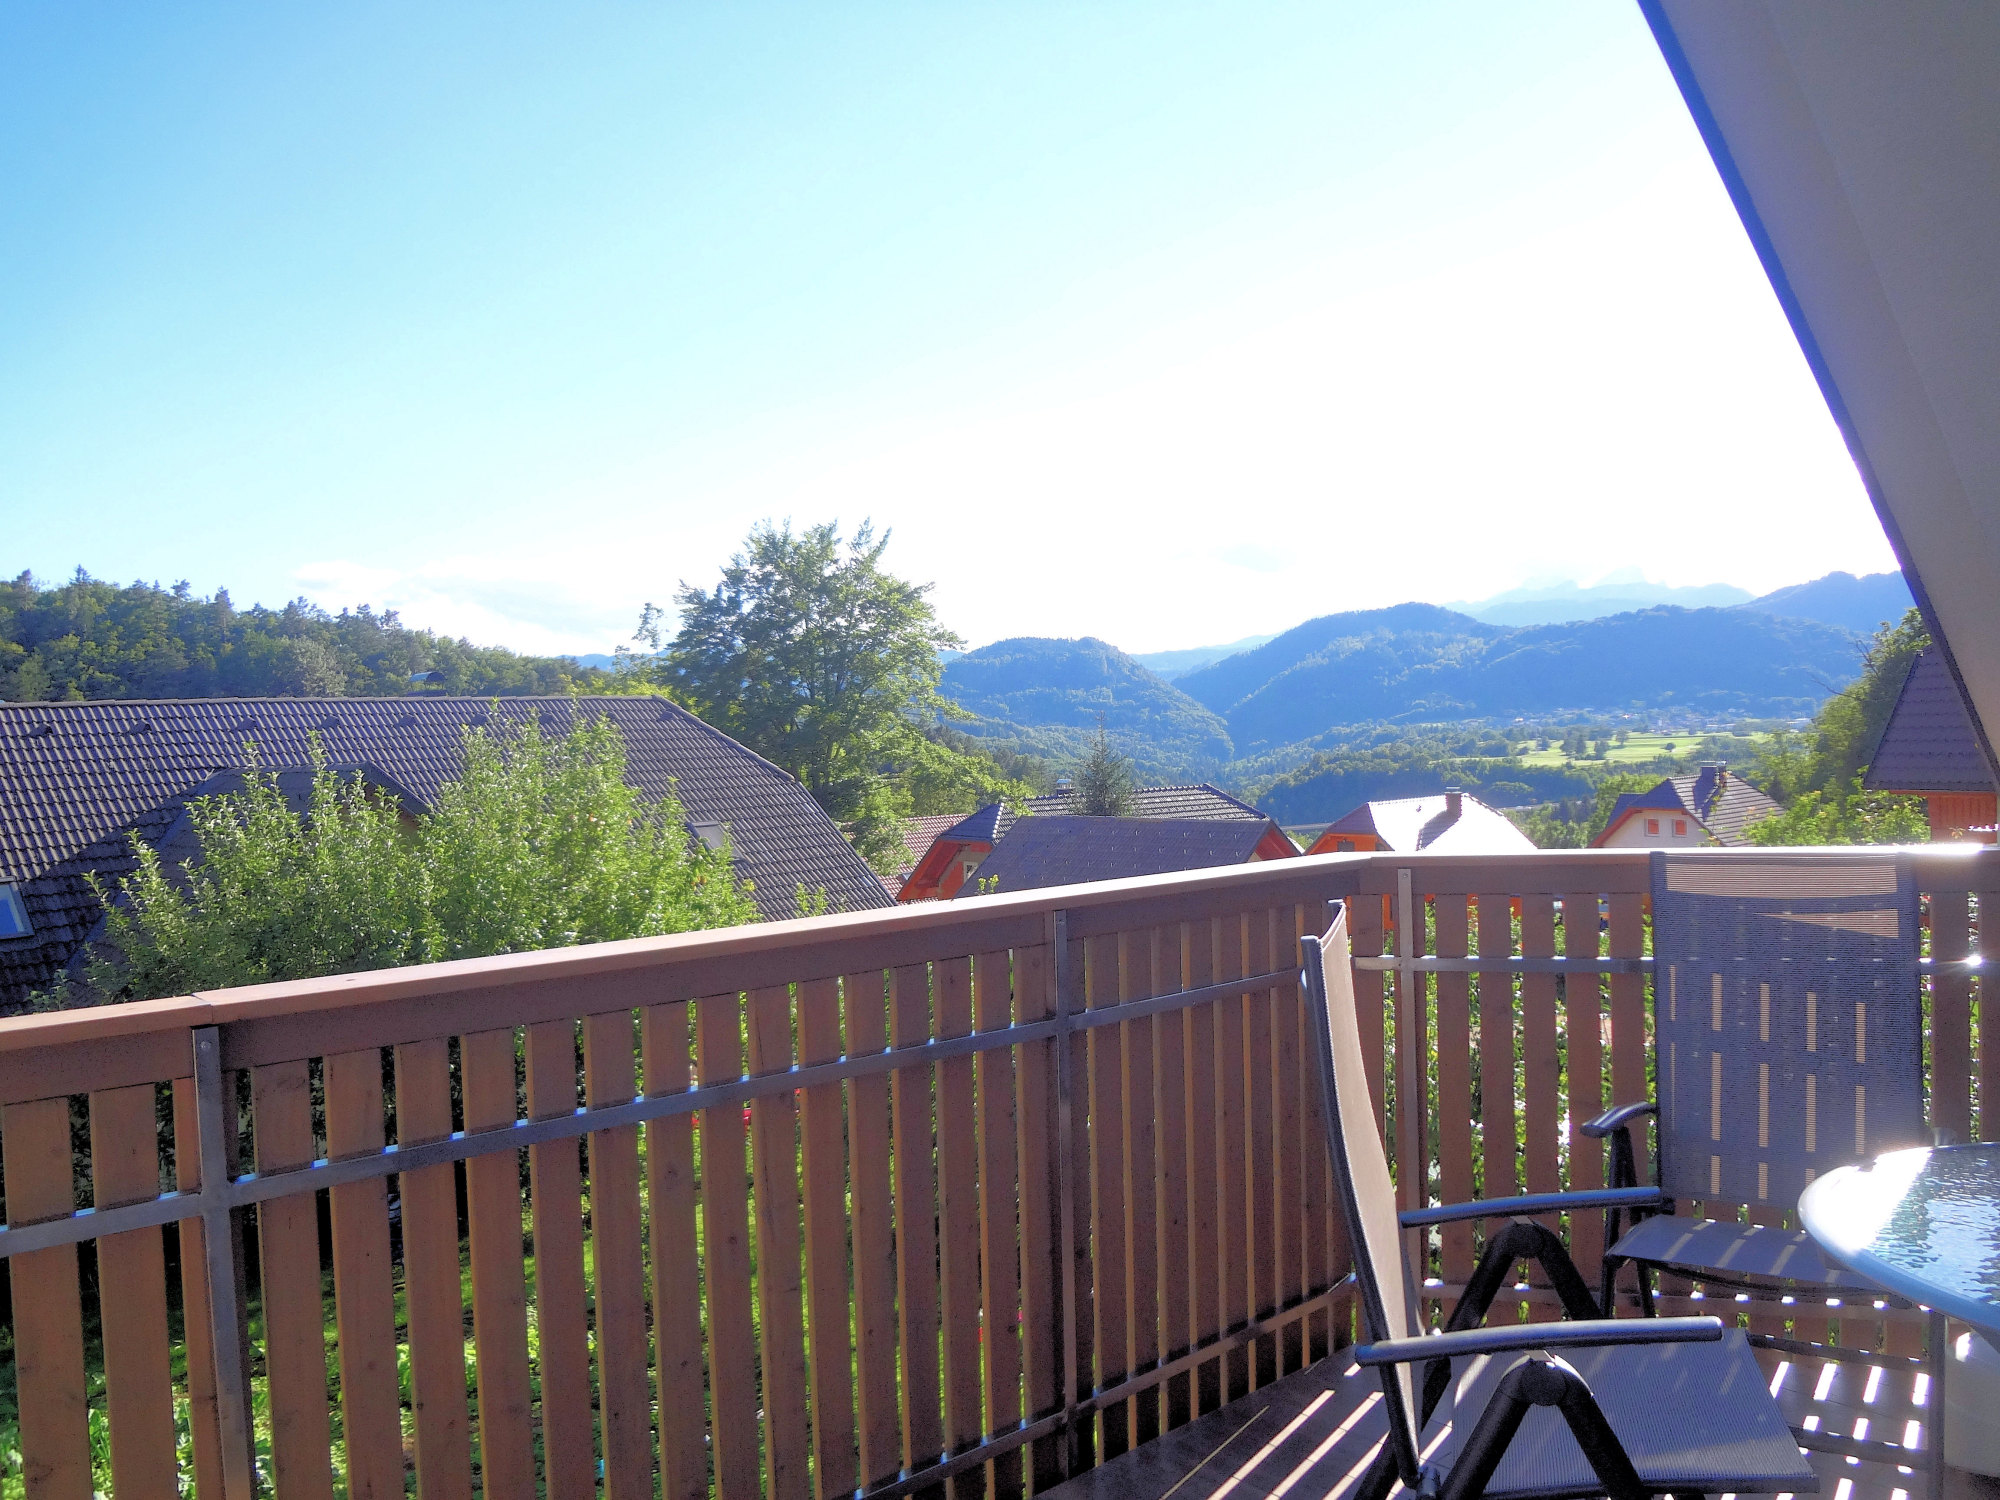 A view of the Slovenian Alps from the balcony of Fine Stay Apartments in Slovenia